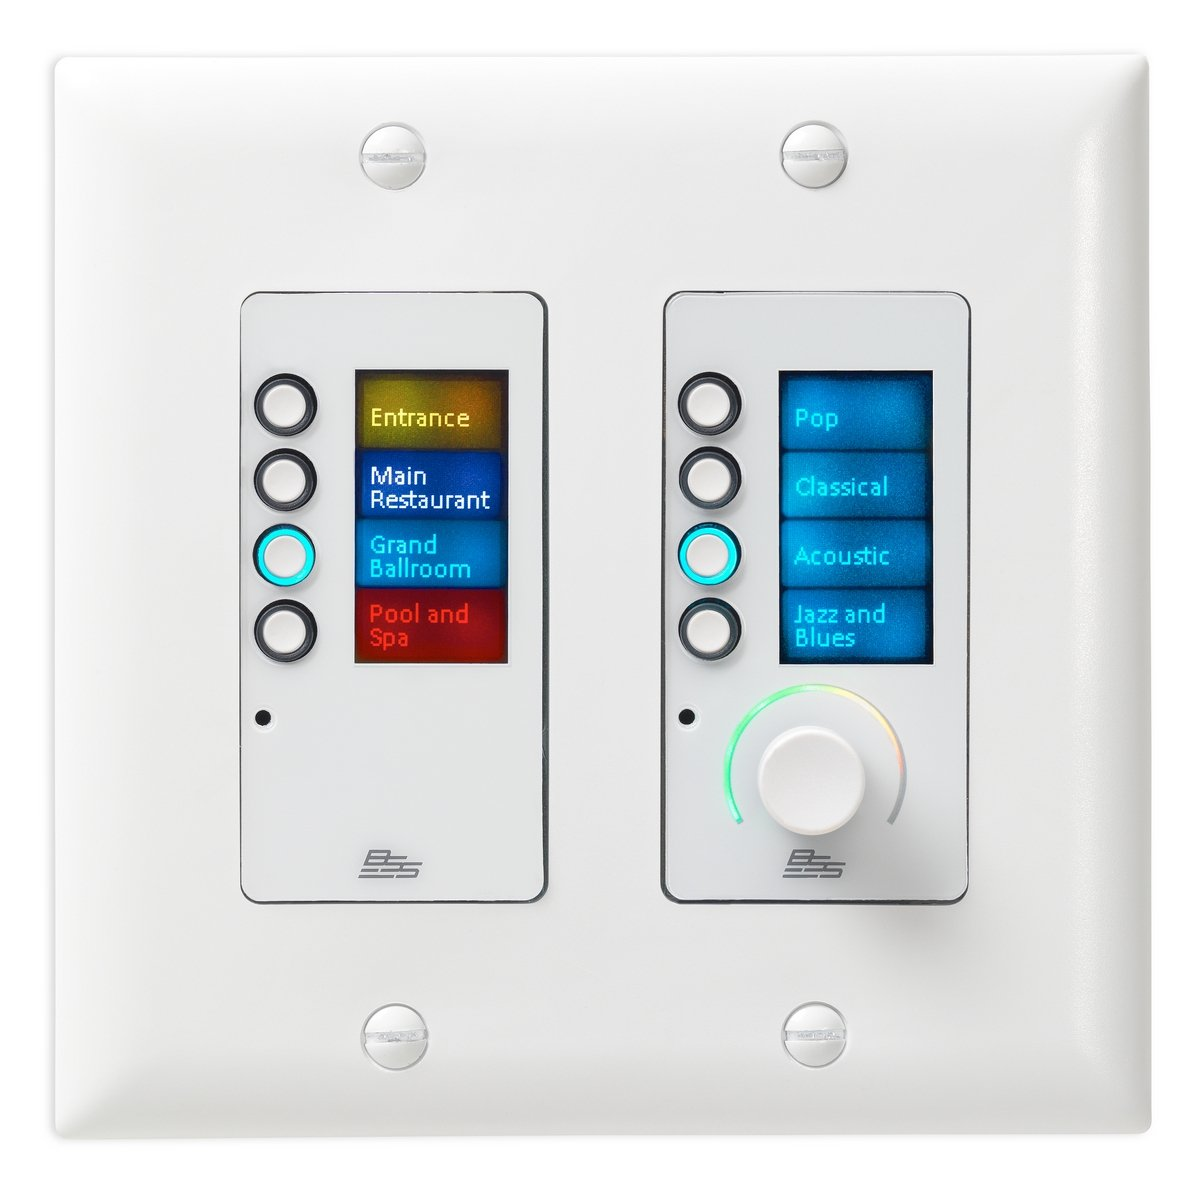 BSS EC-8BV-WHT-US | Ethernet Controller with 8 Buttons Volume Control US Decora White by BSS